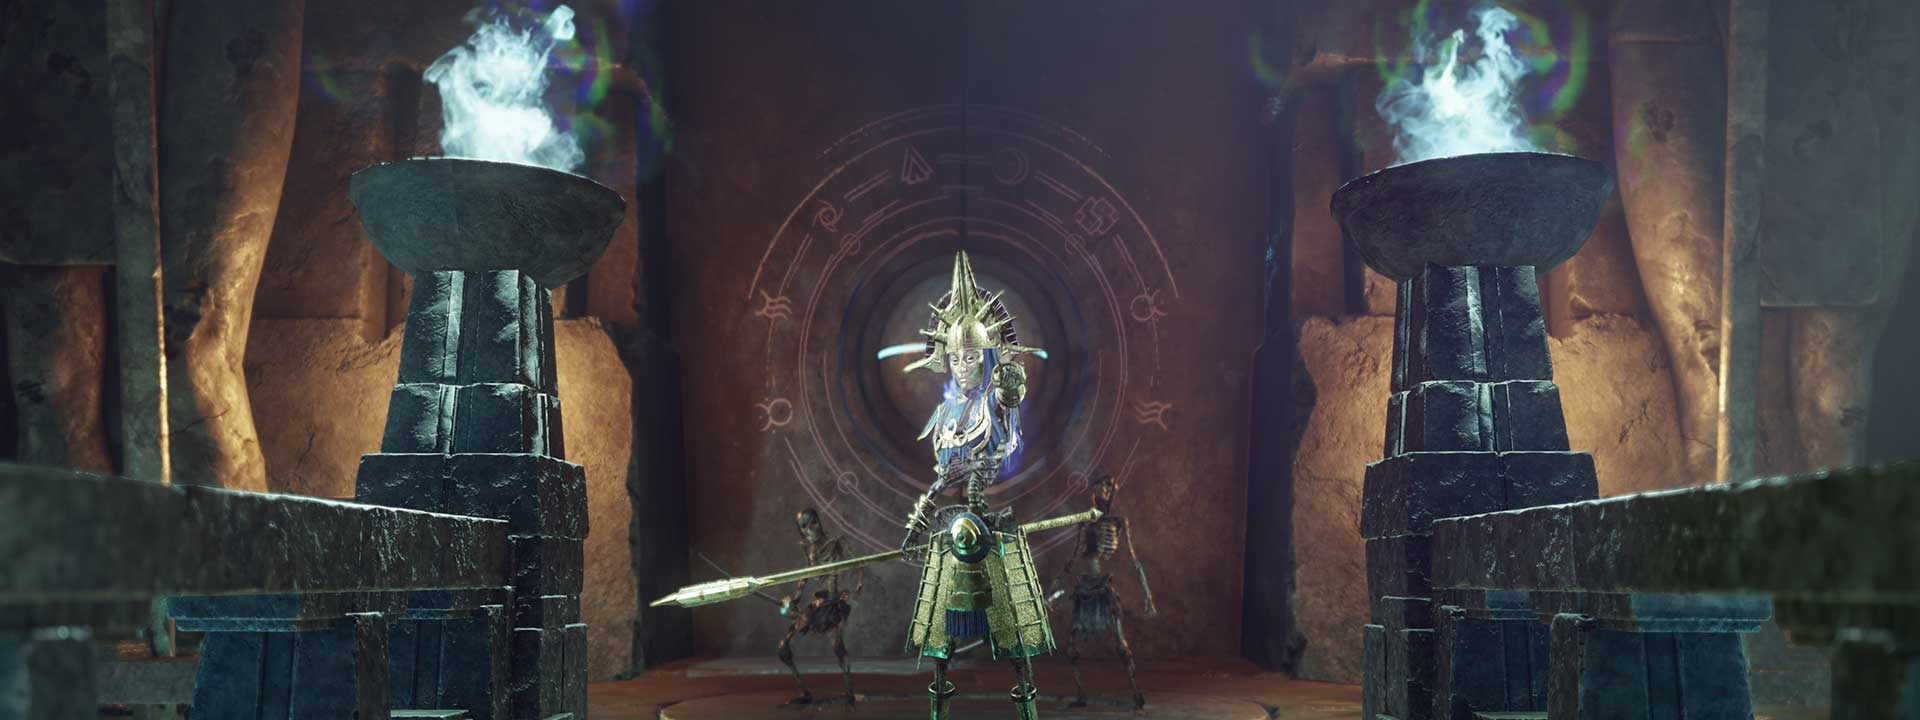 An elite Ancient enemy covered in gold ornaments holds a spear and points menacingly at the camera.